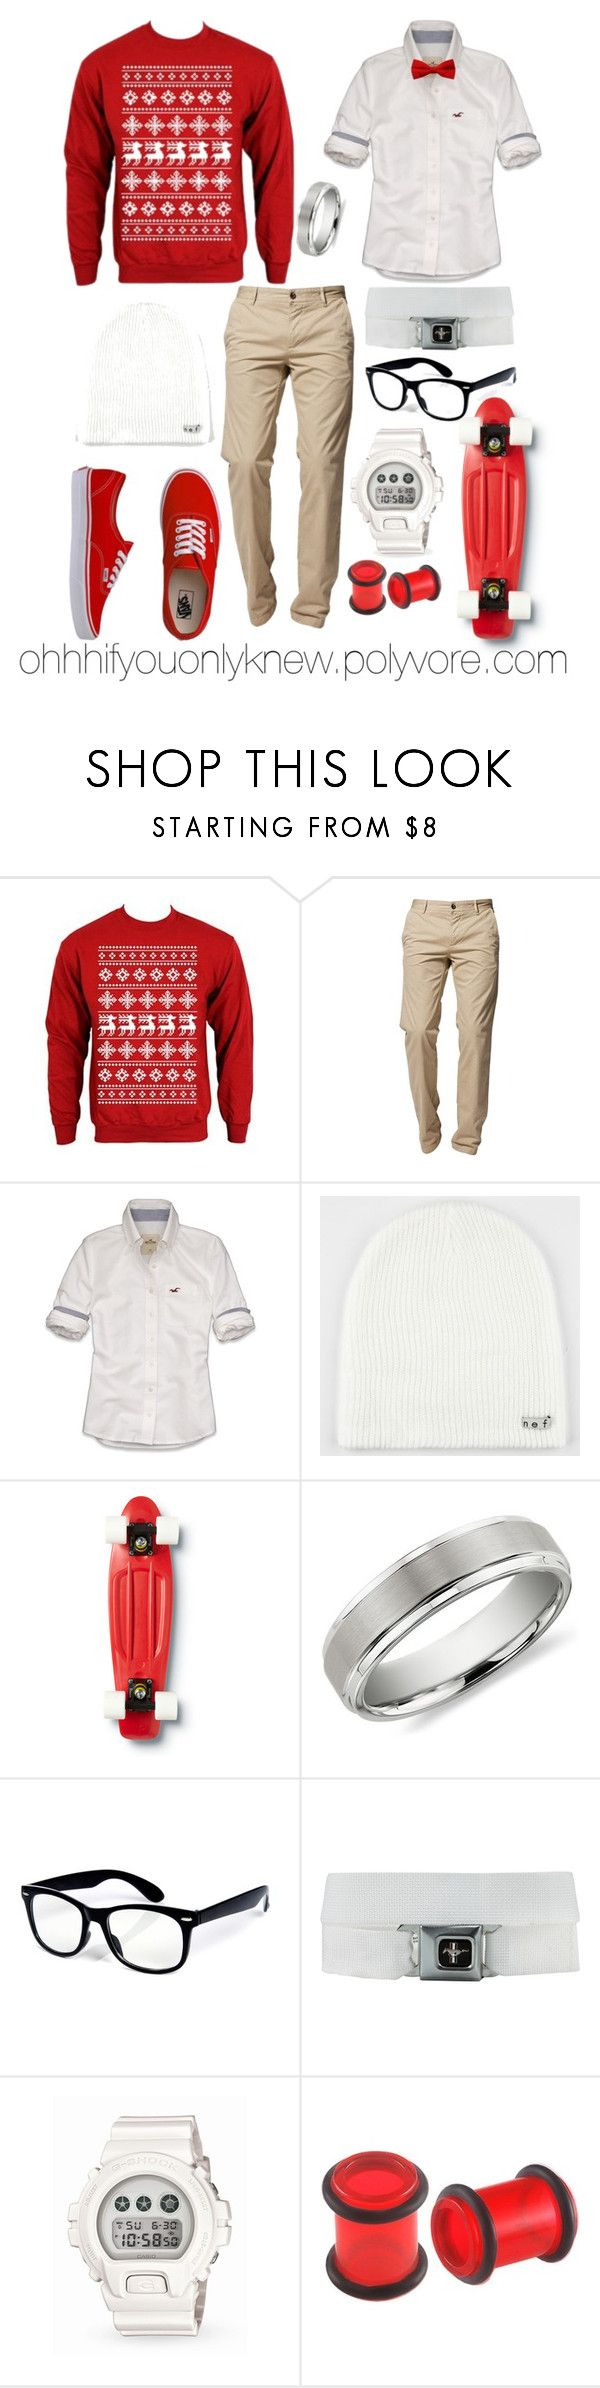 """Merry Christmas! (:"" by ohhhifyouonlyknew ❤ liked on Polyvore featuring BOSS Orange, Hollister Co., Neff, Quiksilver, Vans, Blue Nile, G-Shock, Adax, my style and christmas outfit"